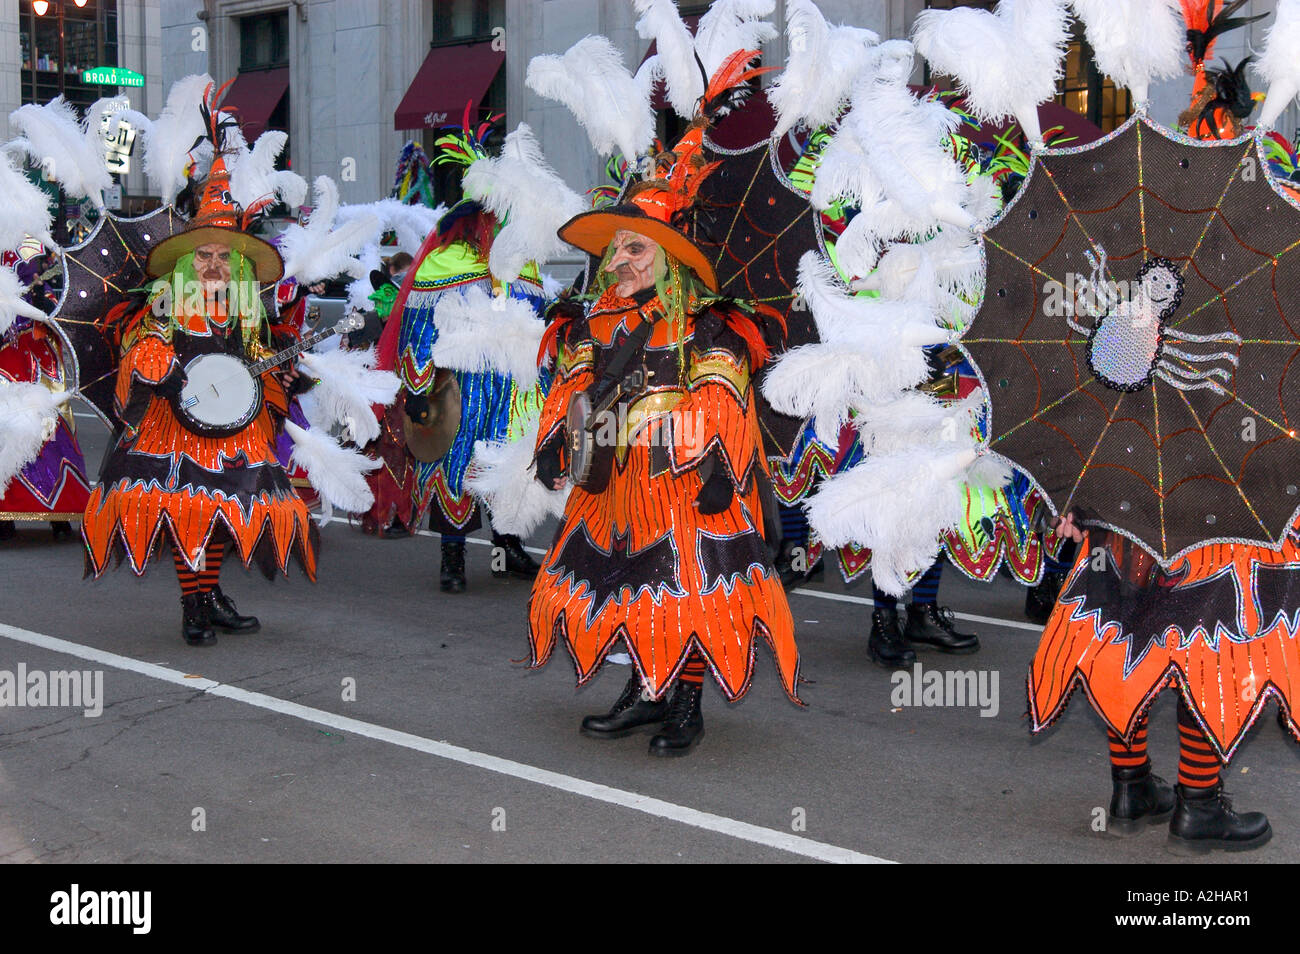 Musicians in costumes of fabulous personages,Mummers Parade, Philadelphia , Pennsylvania,USA - Stock Image